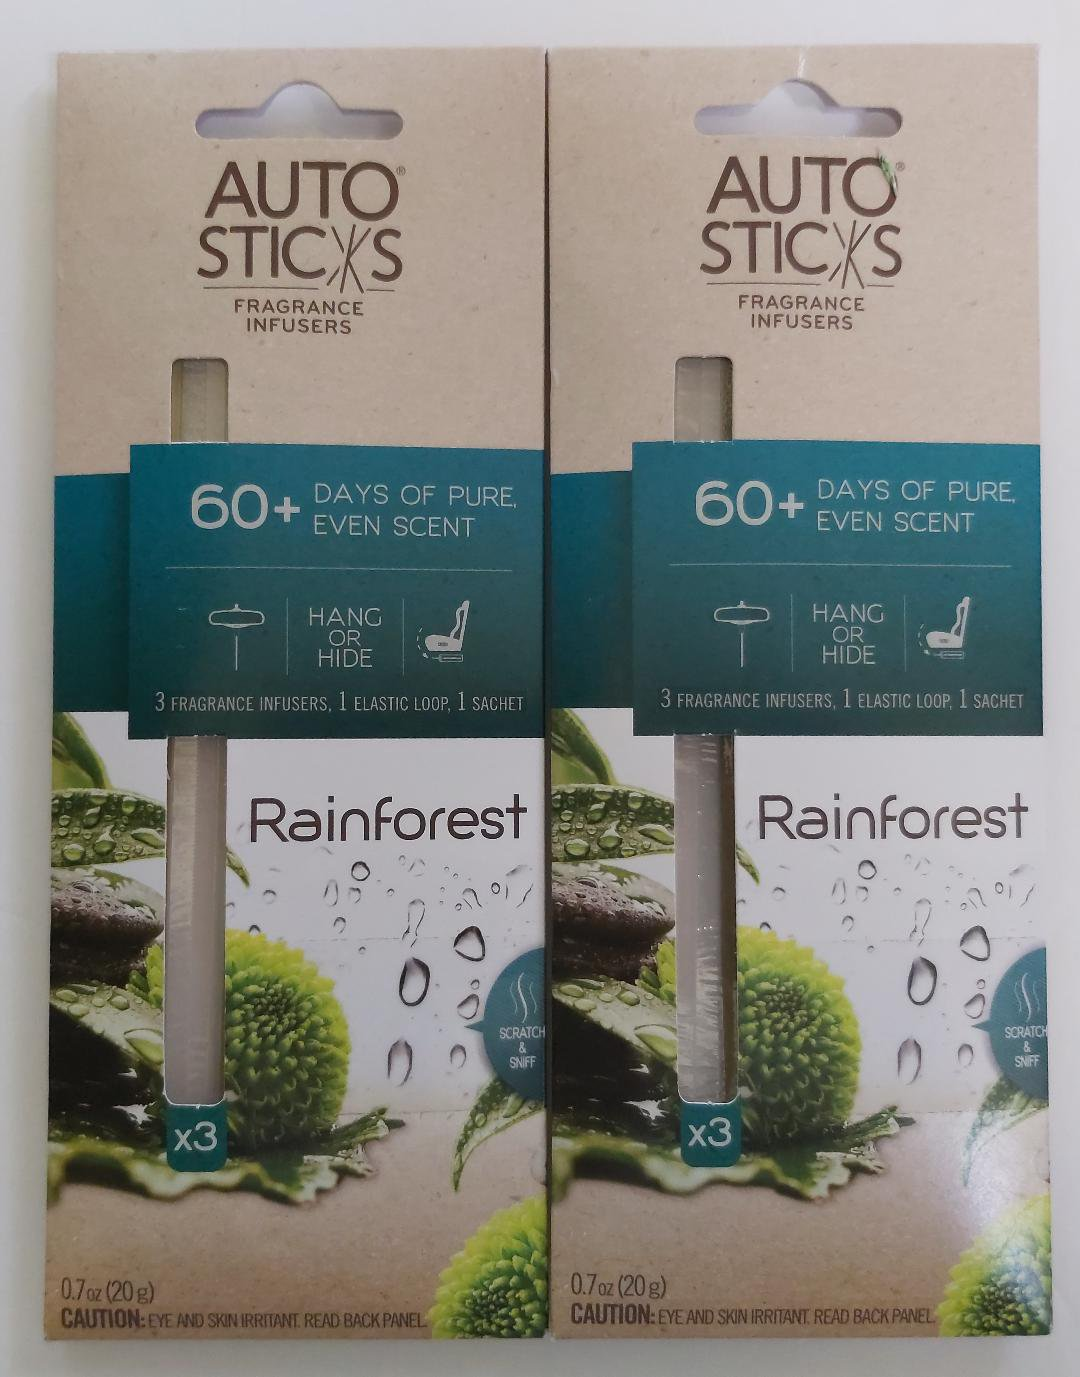 Enviroscent Auto Sticks Rain Forest Fragrance Diffusers, 3 count per pkg, 0.45 oz-Lot of 2 Packages!